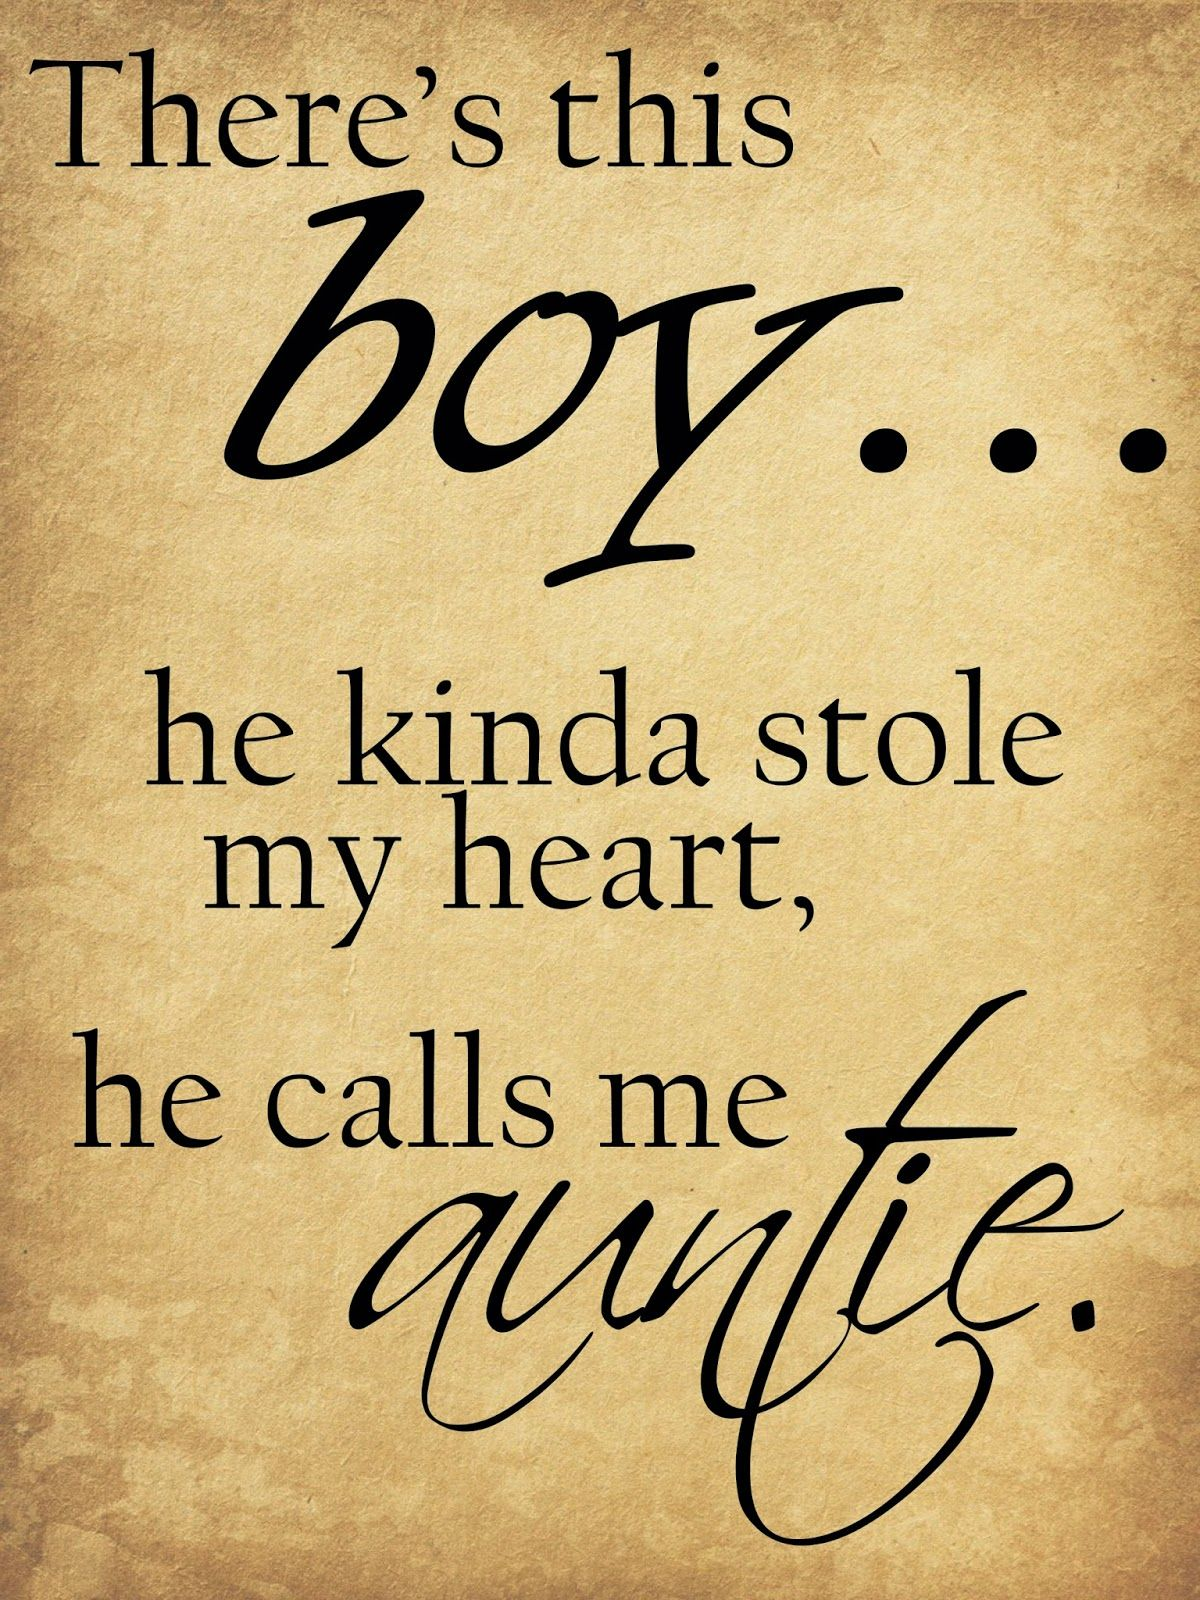 There's this boy... he kinda stole my heart, he calls me